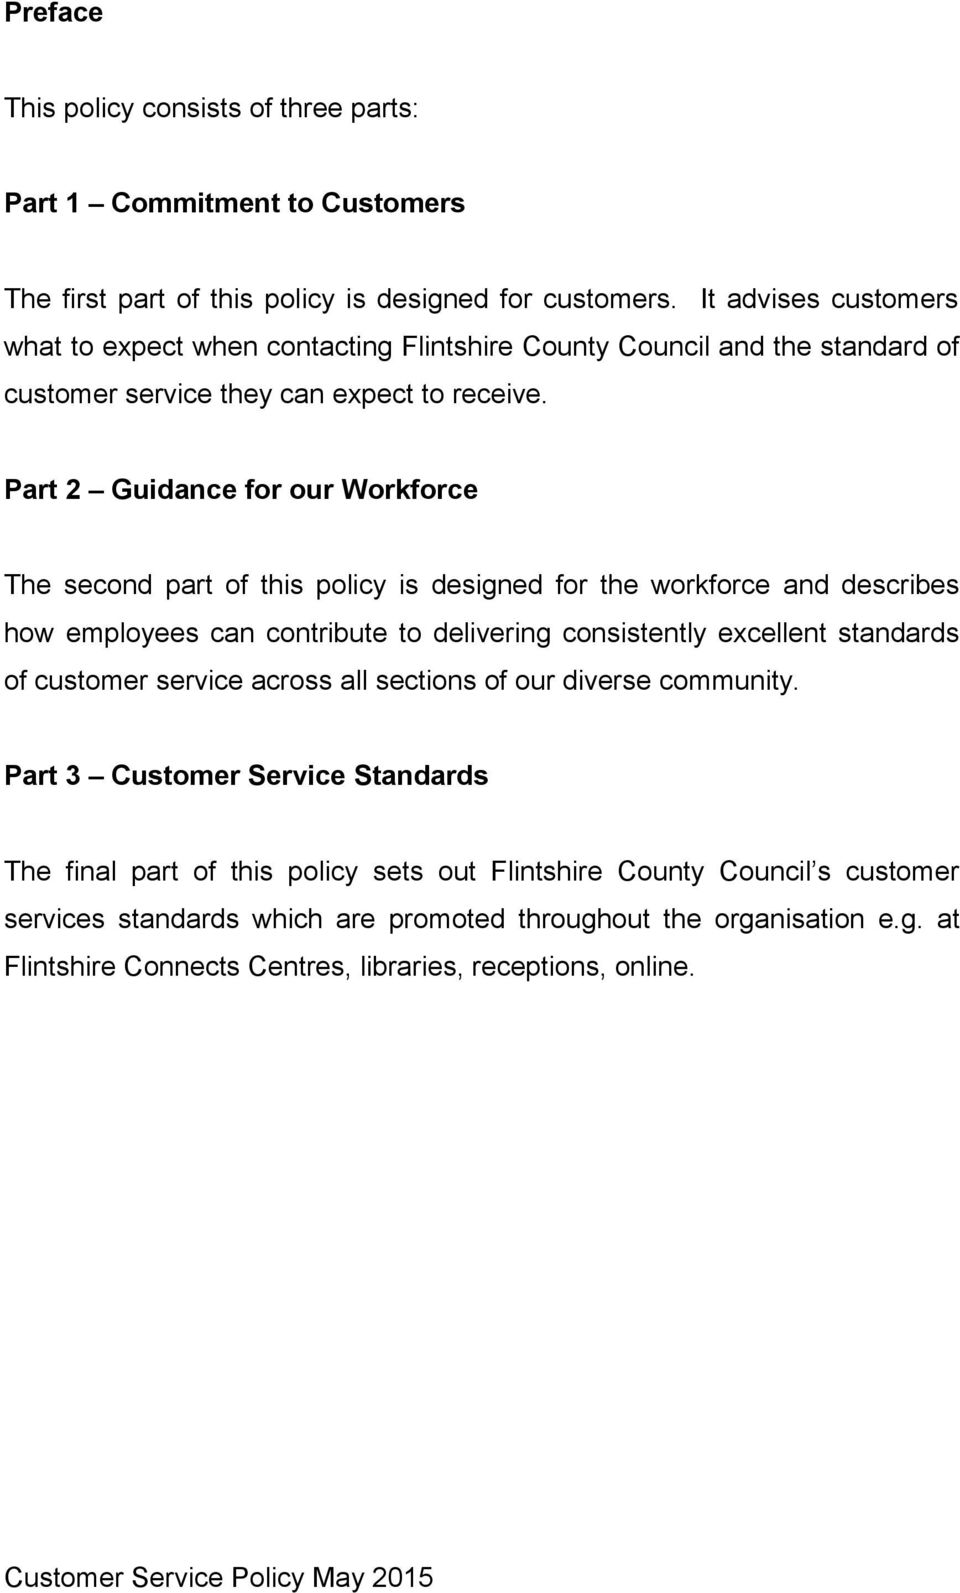 Part 2 Guidance for our Workforce The second part of this policy is designed for the workforce and describes how employees can contribute to delivering consistently excellent standards of